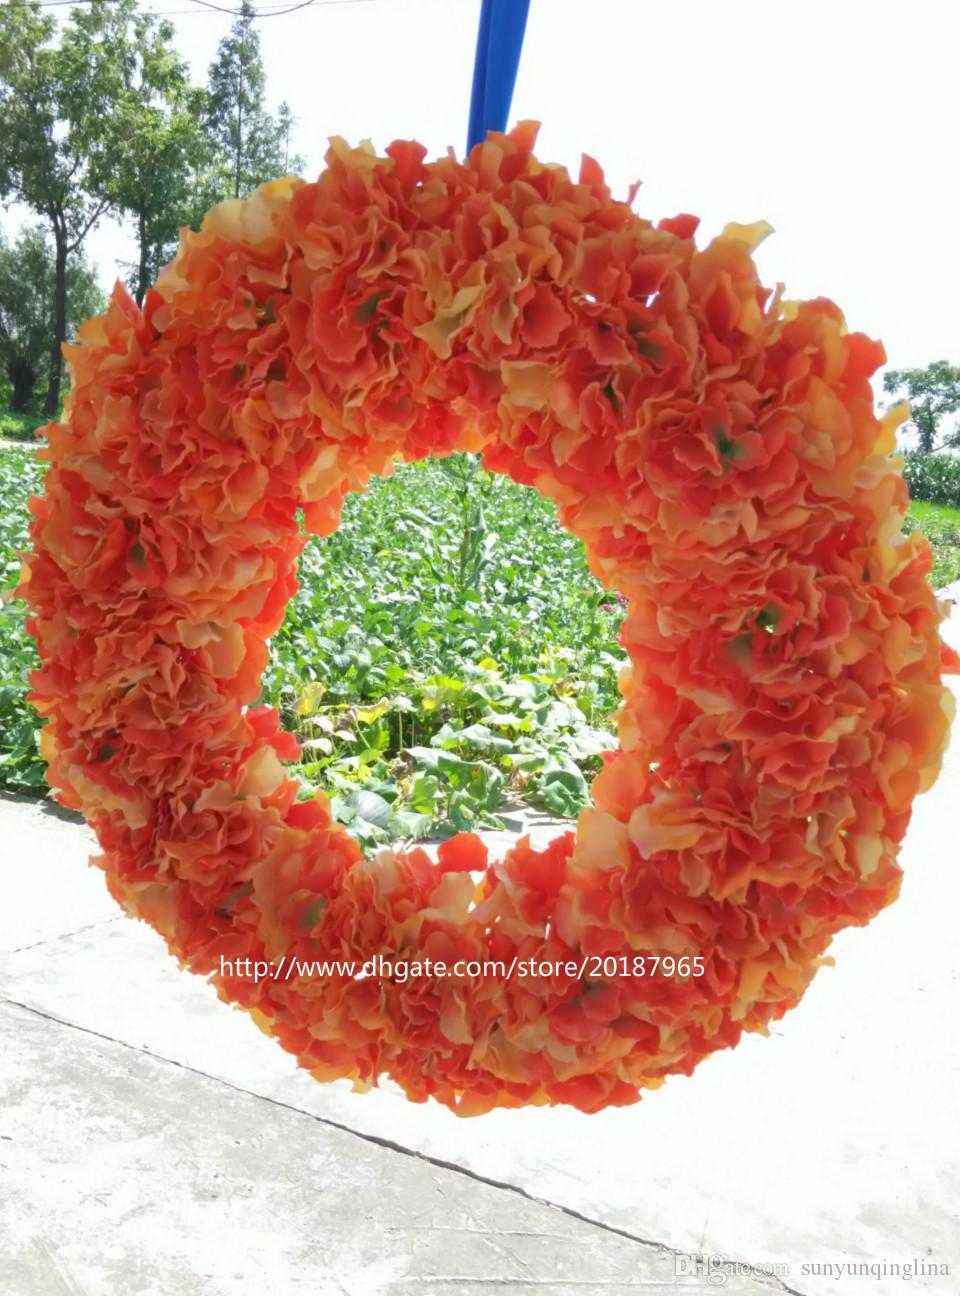 2018 Custom Orange Hydrangea Wreath Front Door Mounted Wreaths 20 Inches  Autumn Wreath Wedding U0026 Housewarming Gift From Sunyunqinglina, $71.36 |  Dhgate.Com